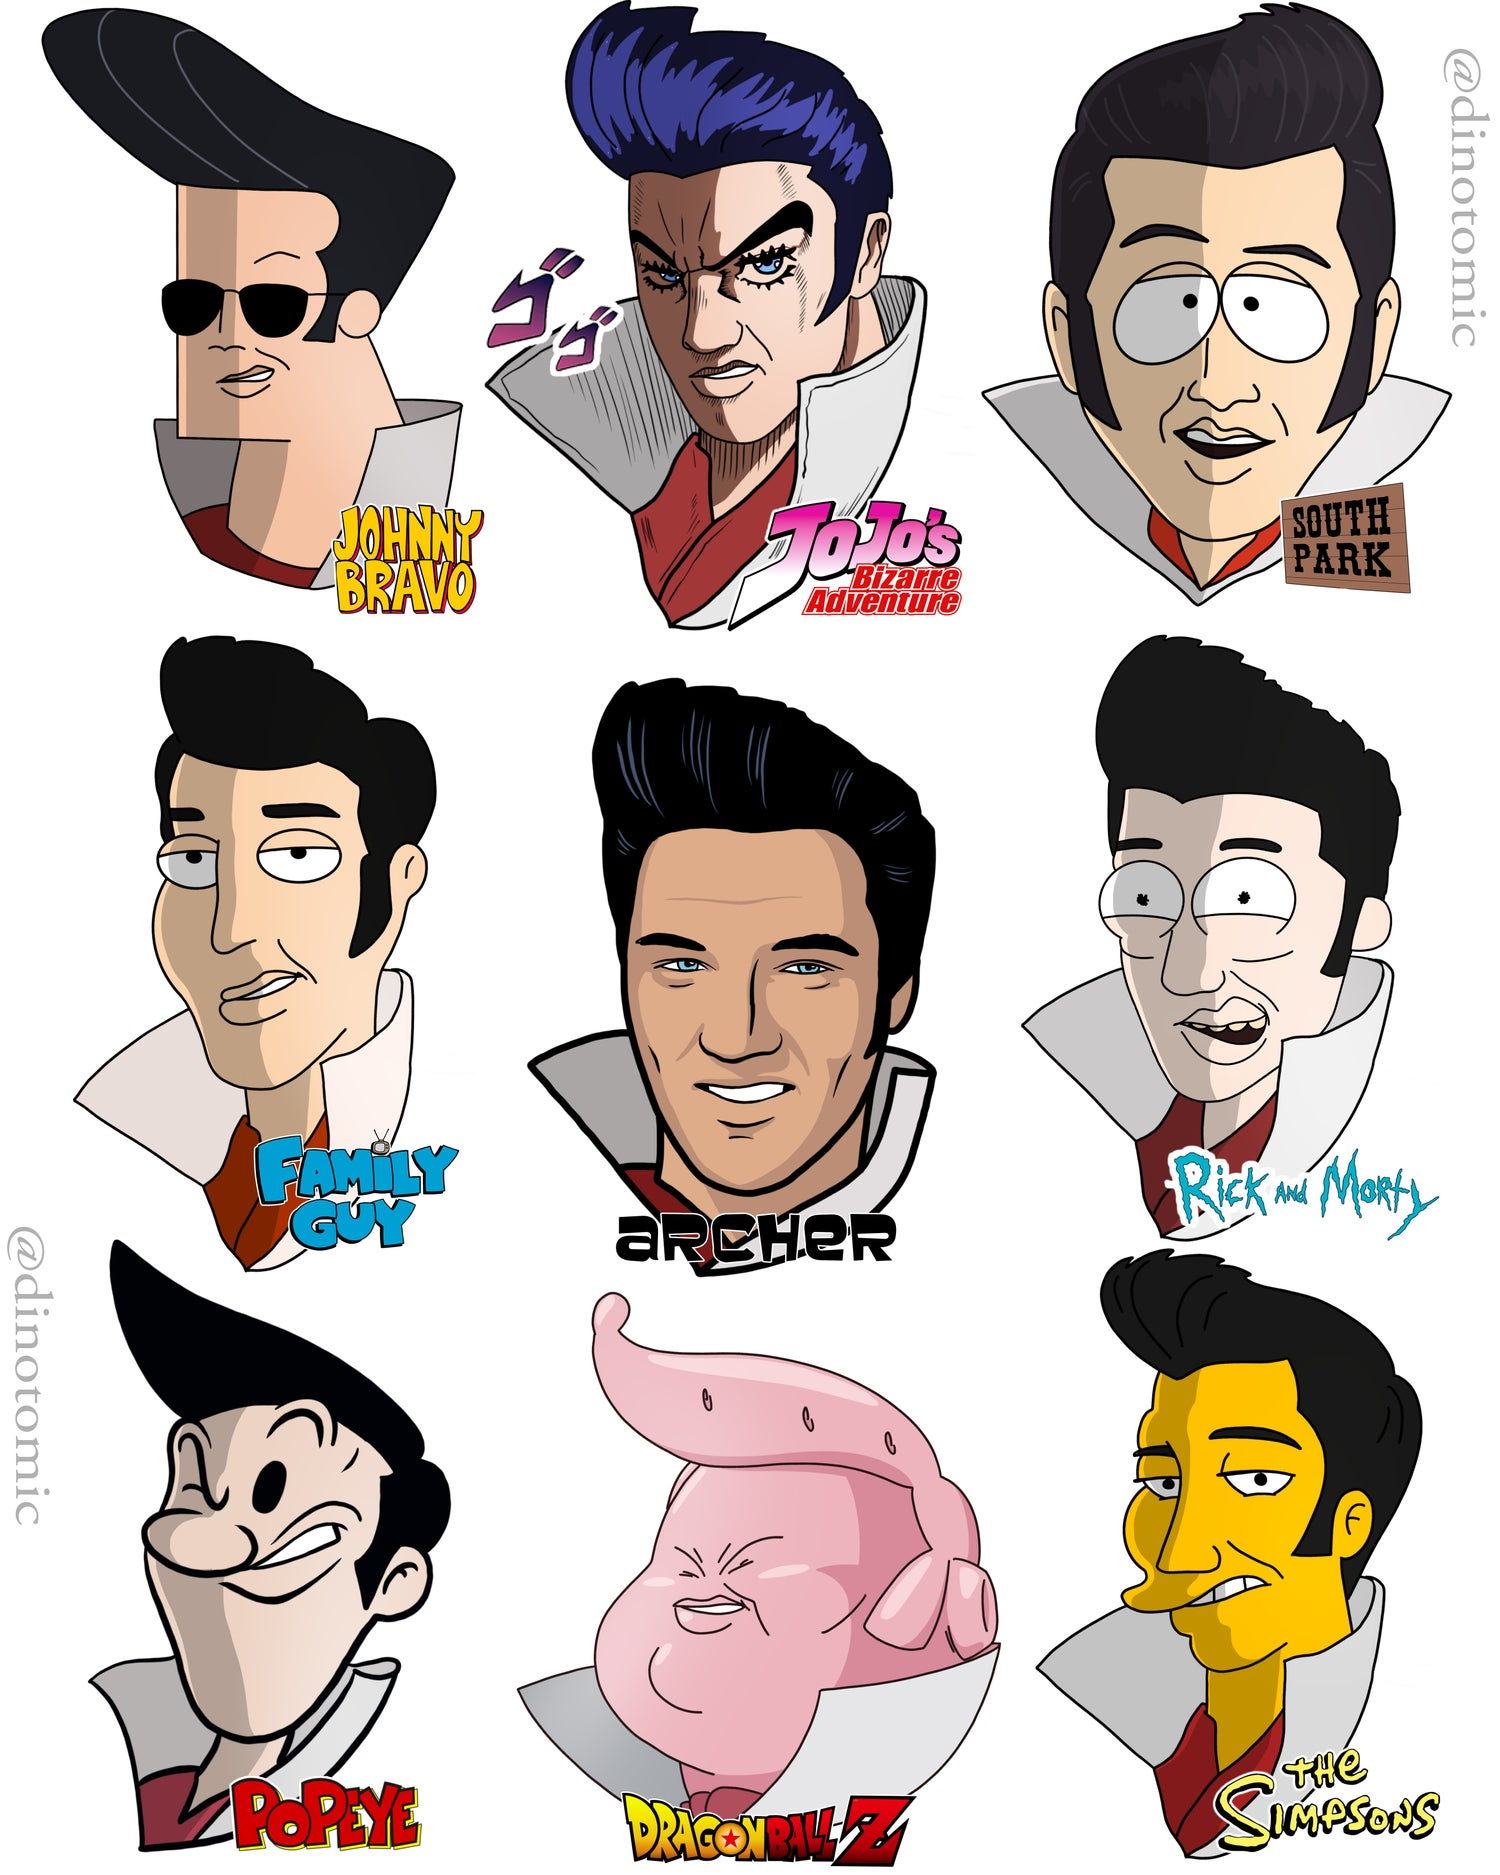 Image of #213 Elvis in many styles